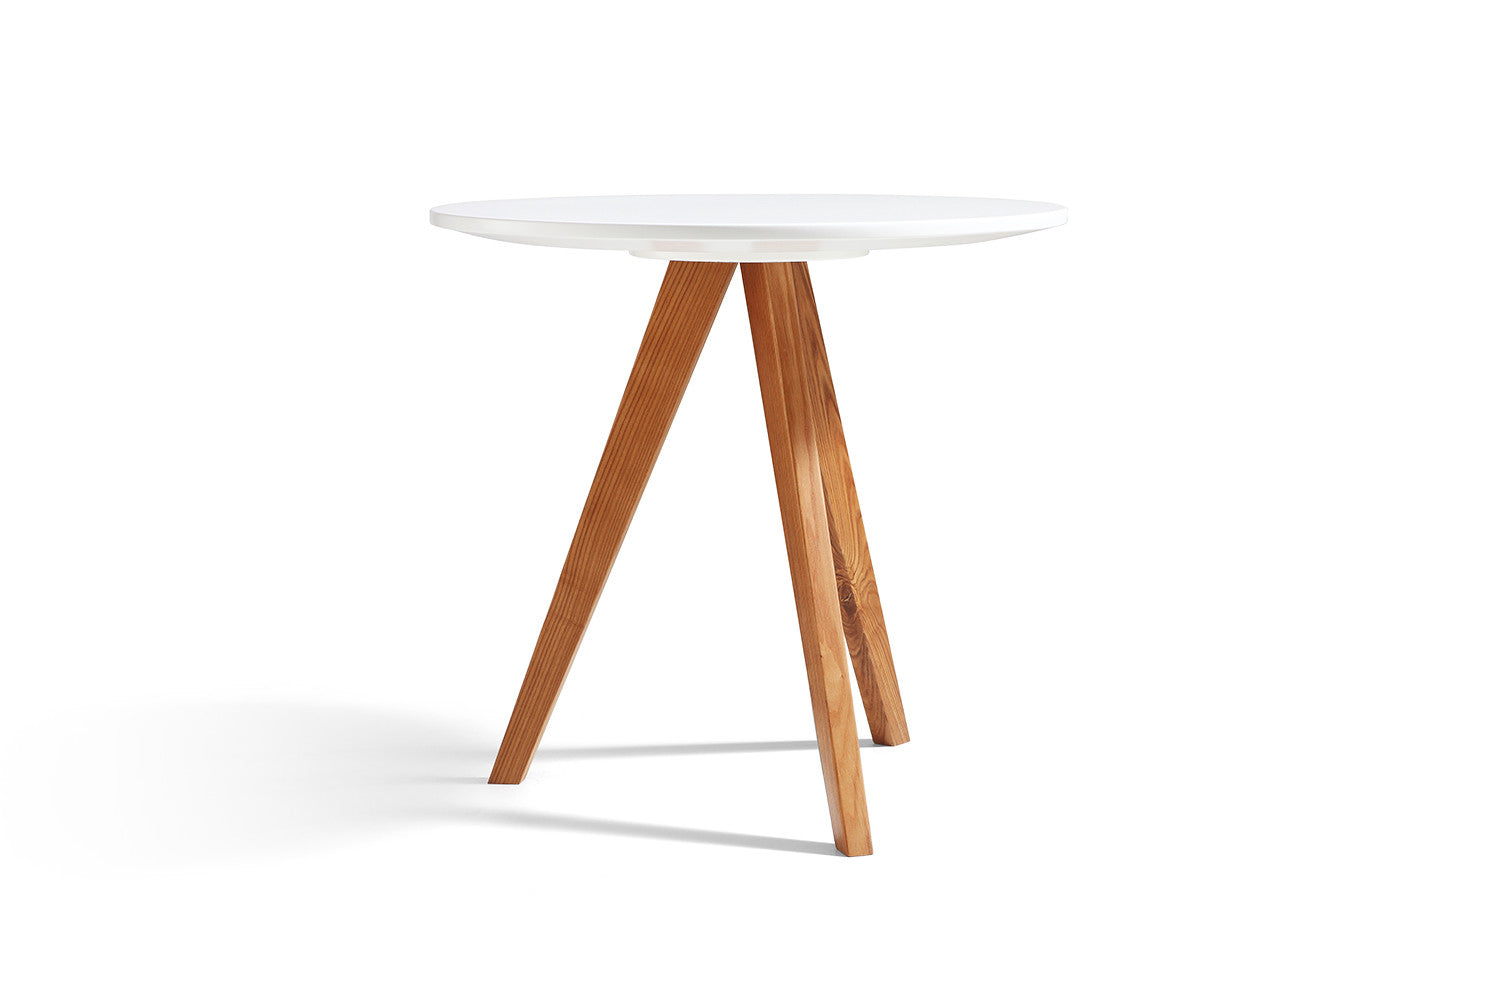 Table d 39 appoint design blanche en bois b le dewarens - Table d appoint design ...